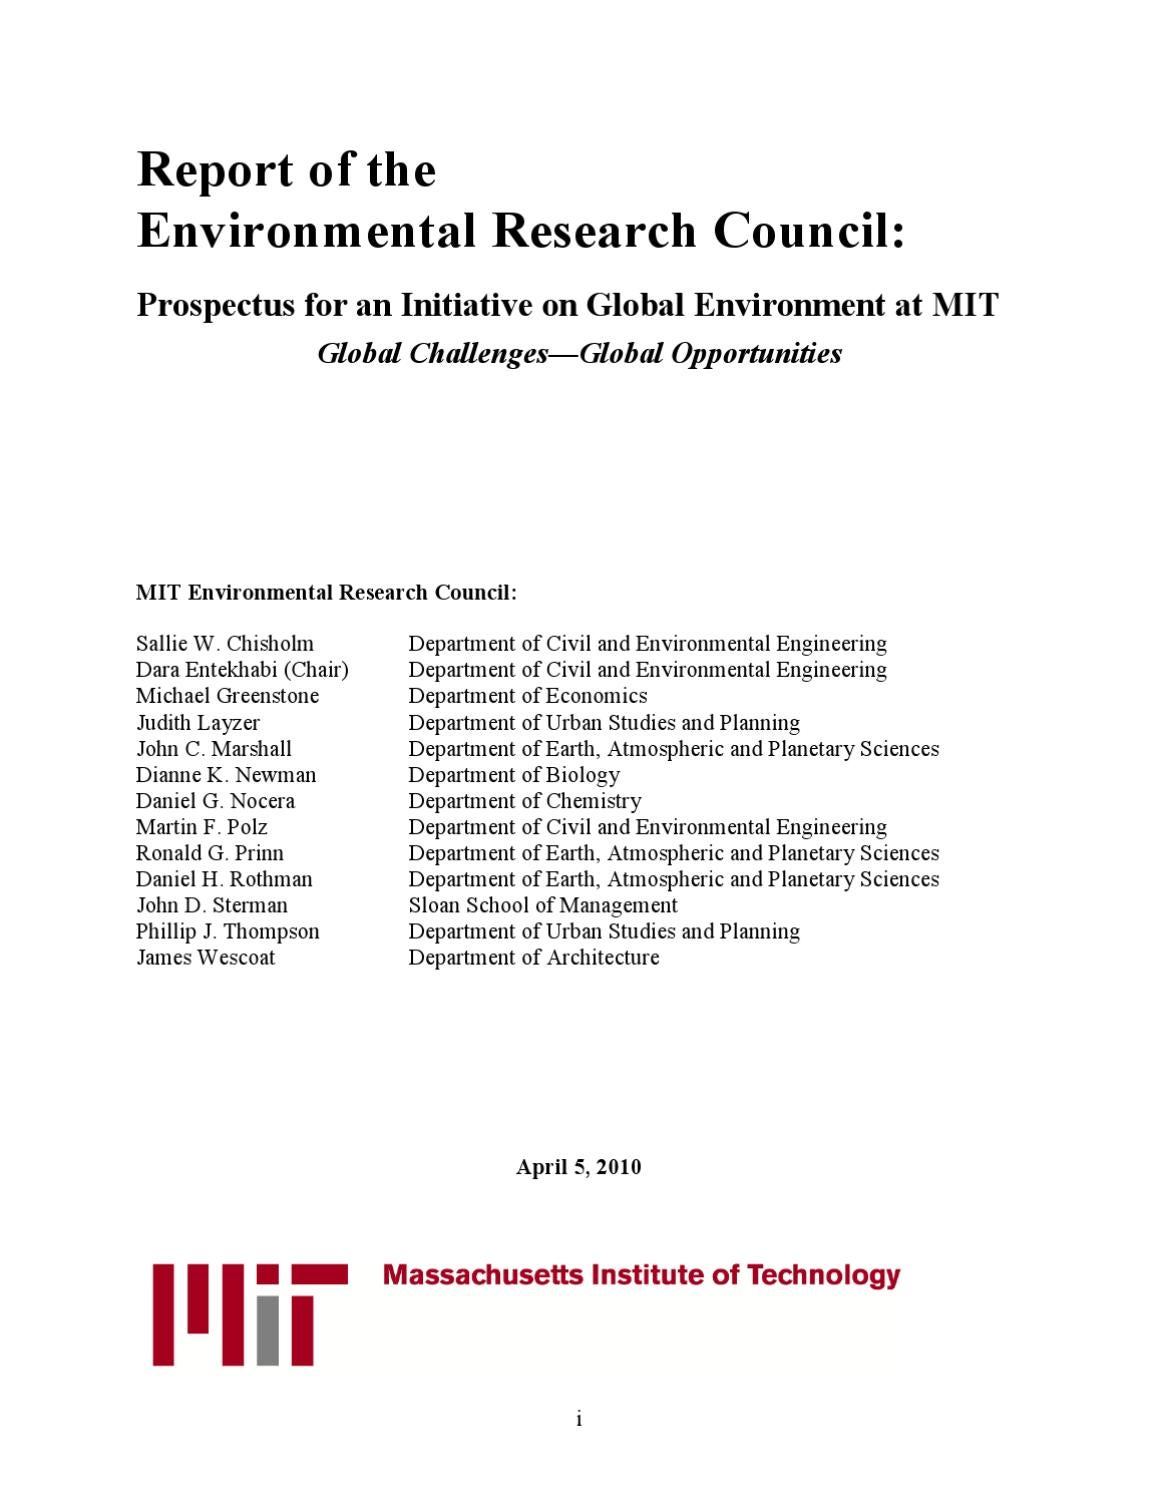 Prospectus for an initiative on global environment at mit report prospectus for an initiative on global environment at mit report er council by giancarlo colombo issuu xflitez Gallery